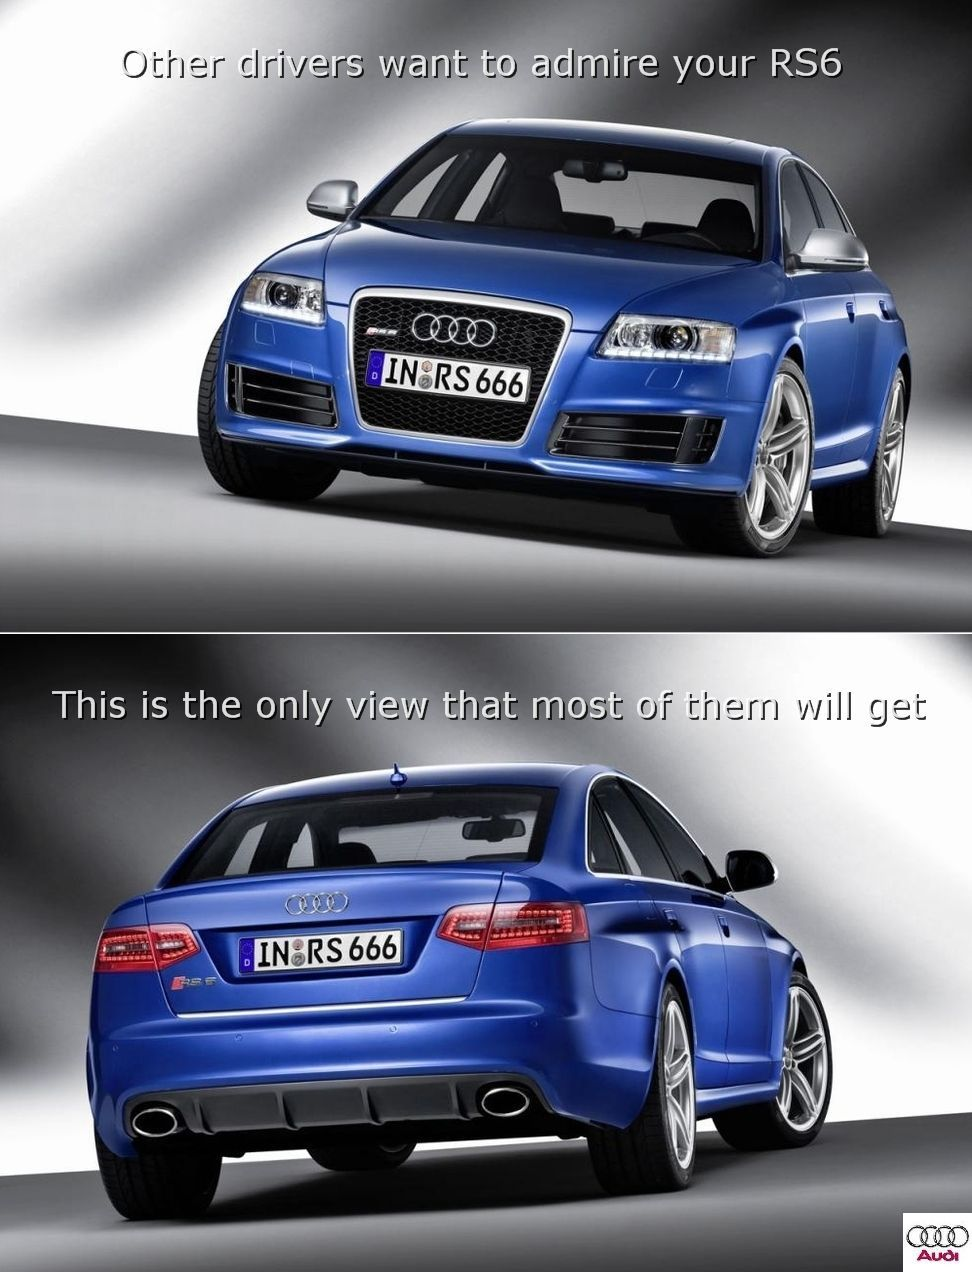 Audi ad is perfect for spendthrifts and unconflicted consumer types